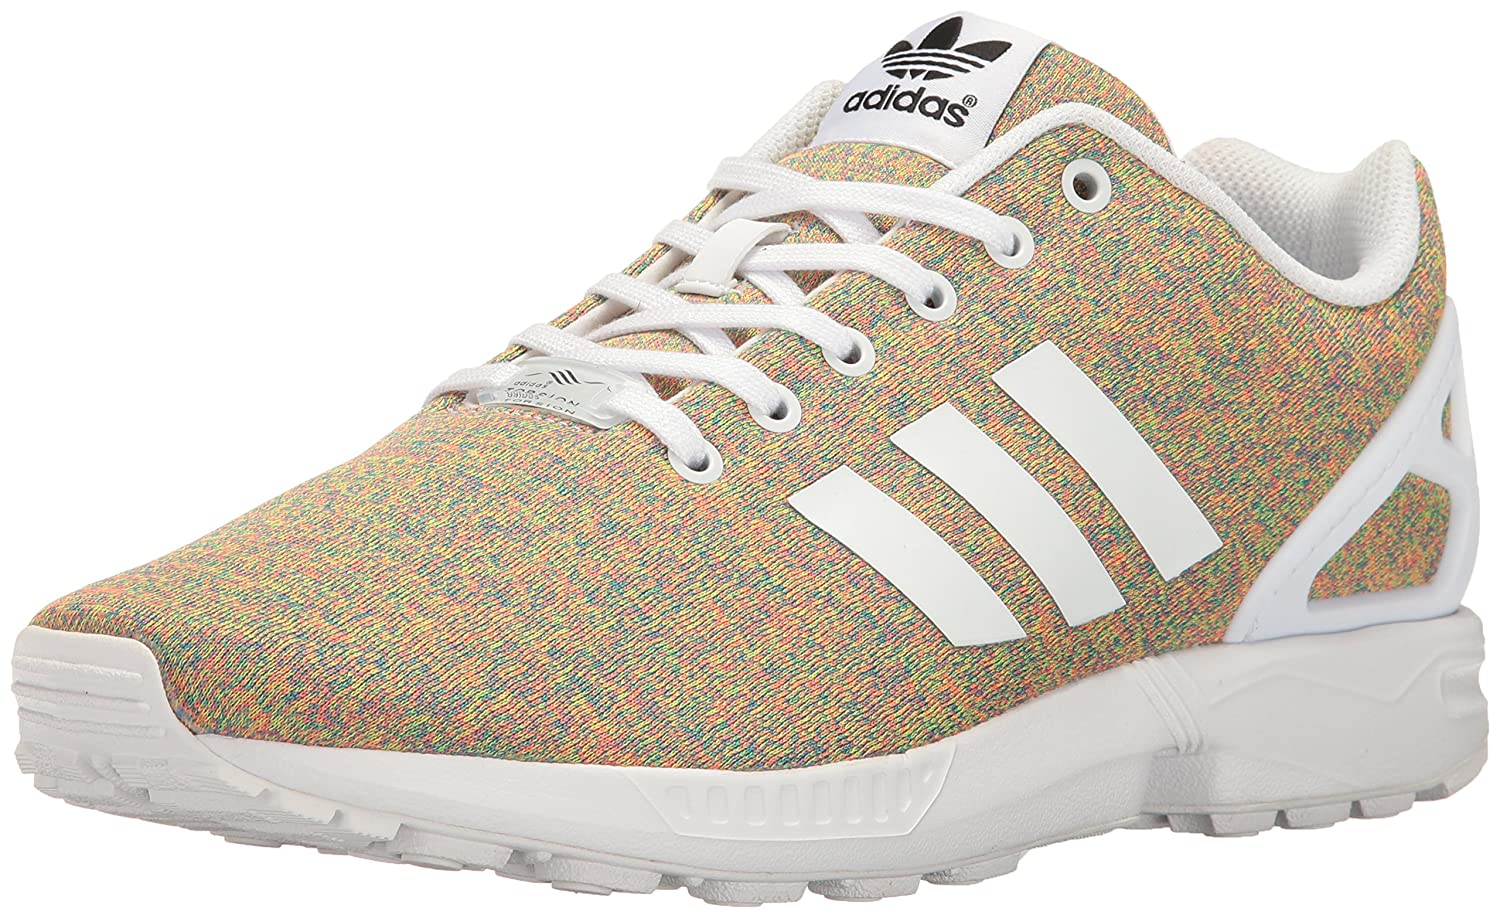 adidas Originals Men's ZX Flux Fashion Sneaker B01M09NGTY 8 M US|White/White/White